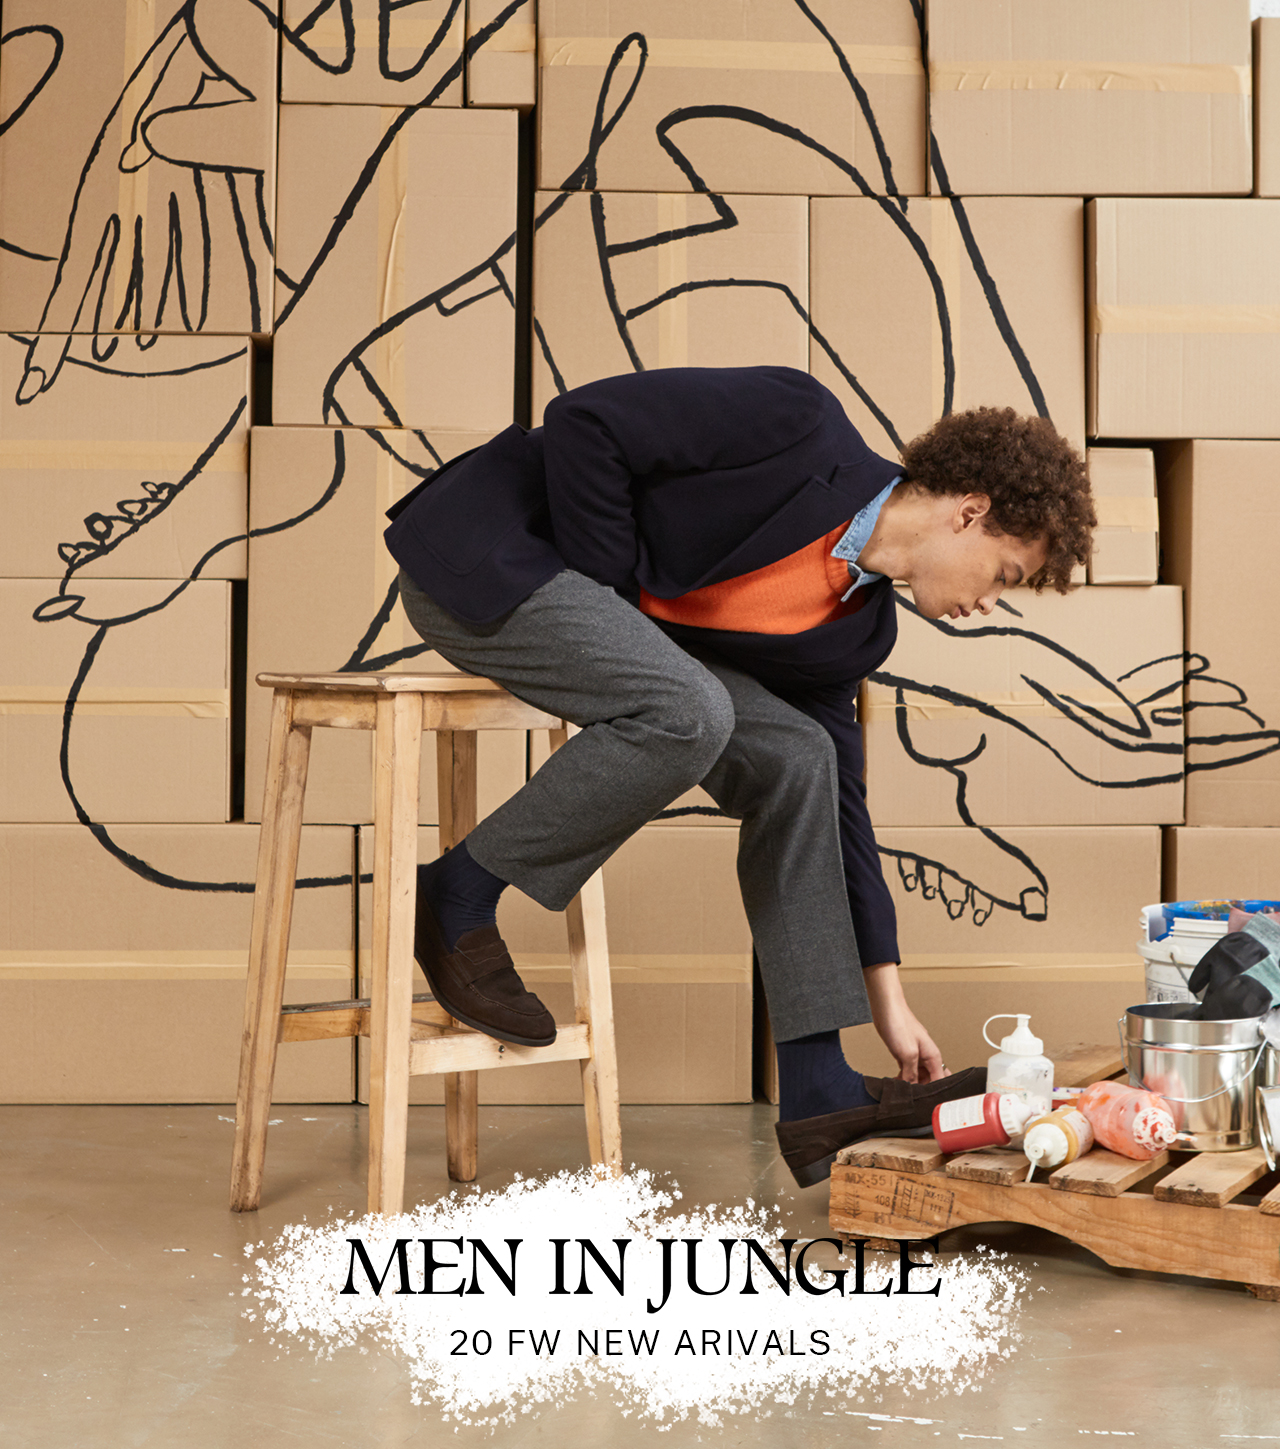 Men in jungle